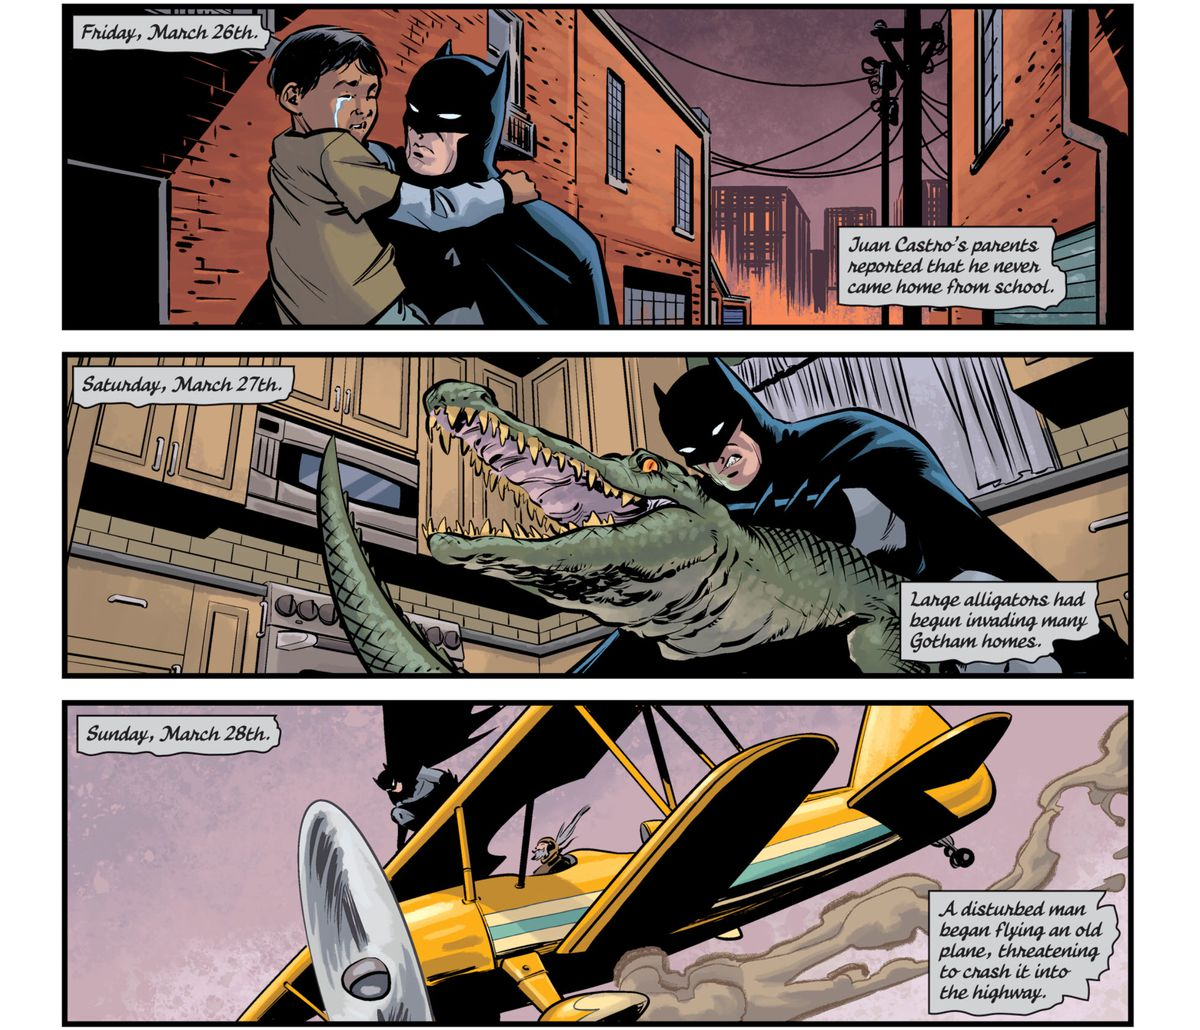 """Batman rescues a lost child, the next day he wrestles an alligator that invaded a Gotham home, and the next he stopped """"a disturbed man"""" flying """"an old plane, threatening to crash it into the highway,"""" in Batman Annual #4, DC Comics (2019)."""